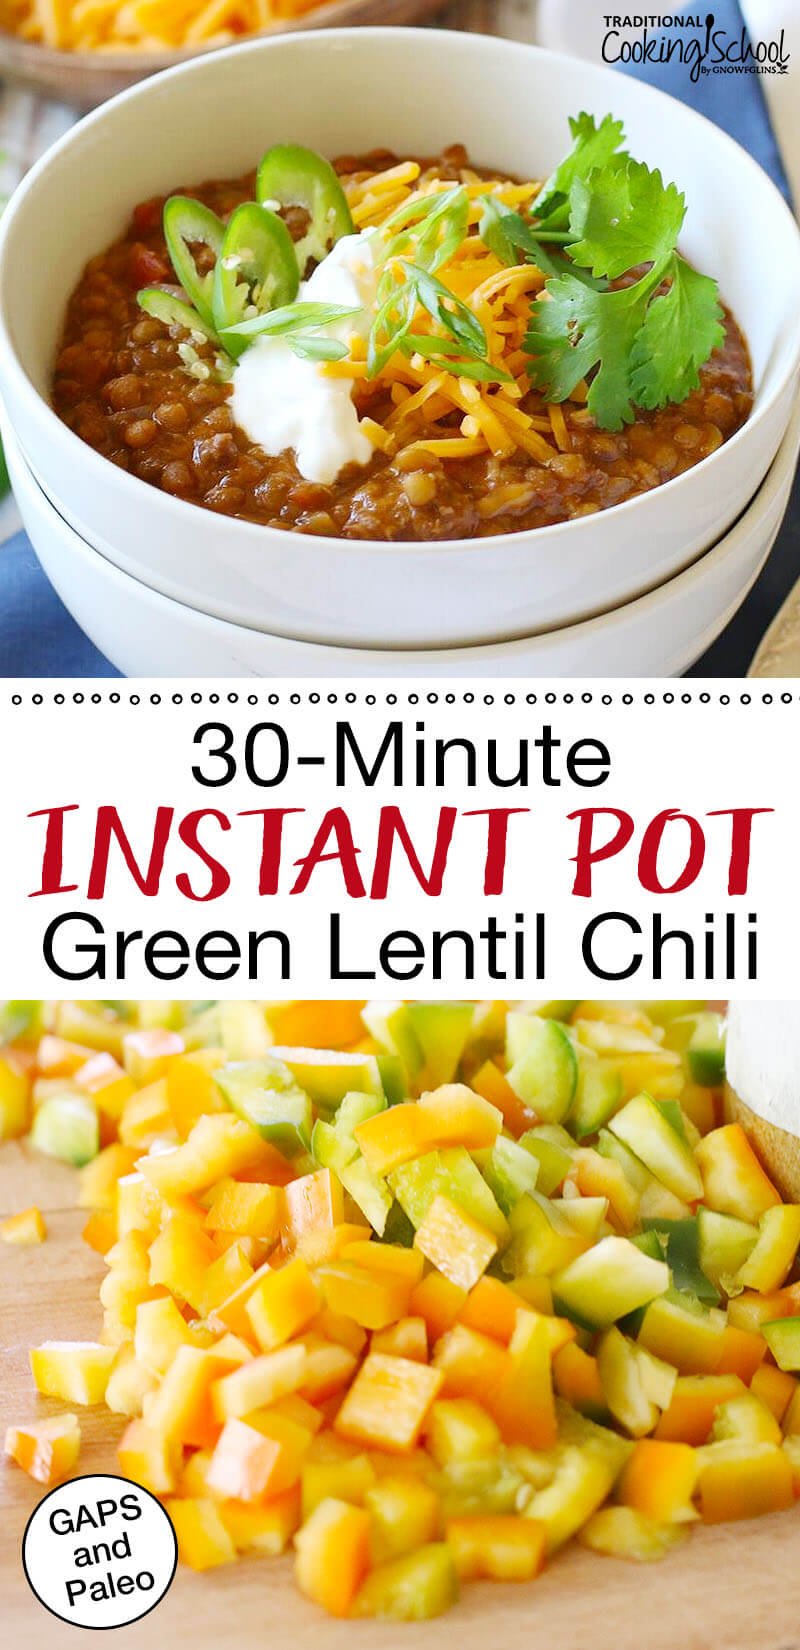 "photo collage of lentil chili topped with sour cream, grated cheddar, peppers, and cilantro with text overlay: ""30-Minute Instant Pot Green Lentil Chili"""